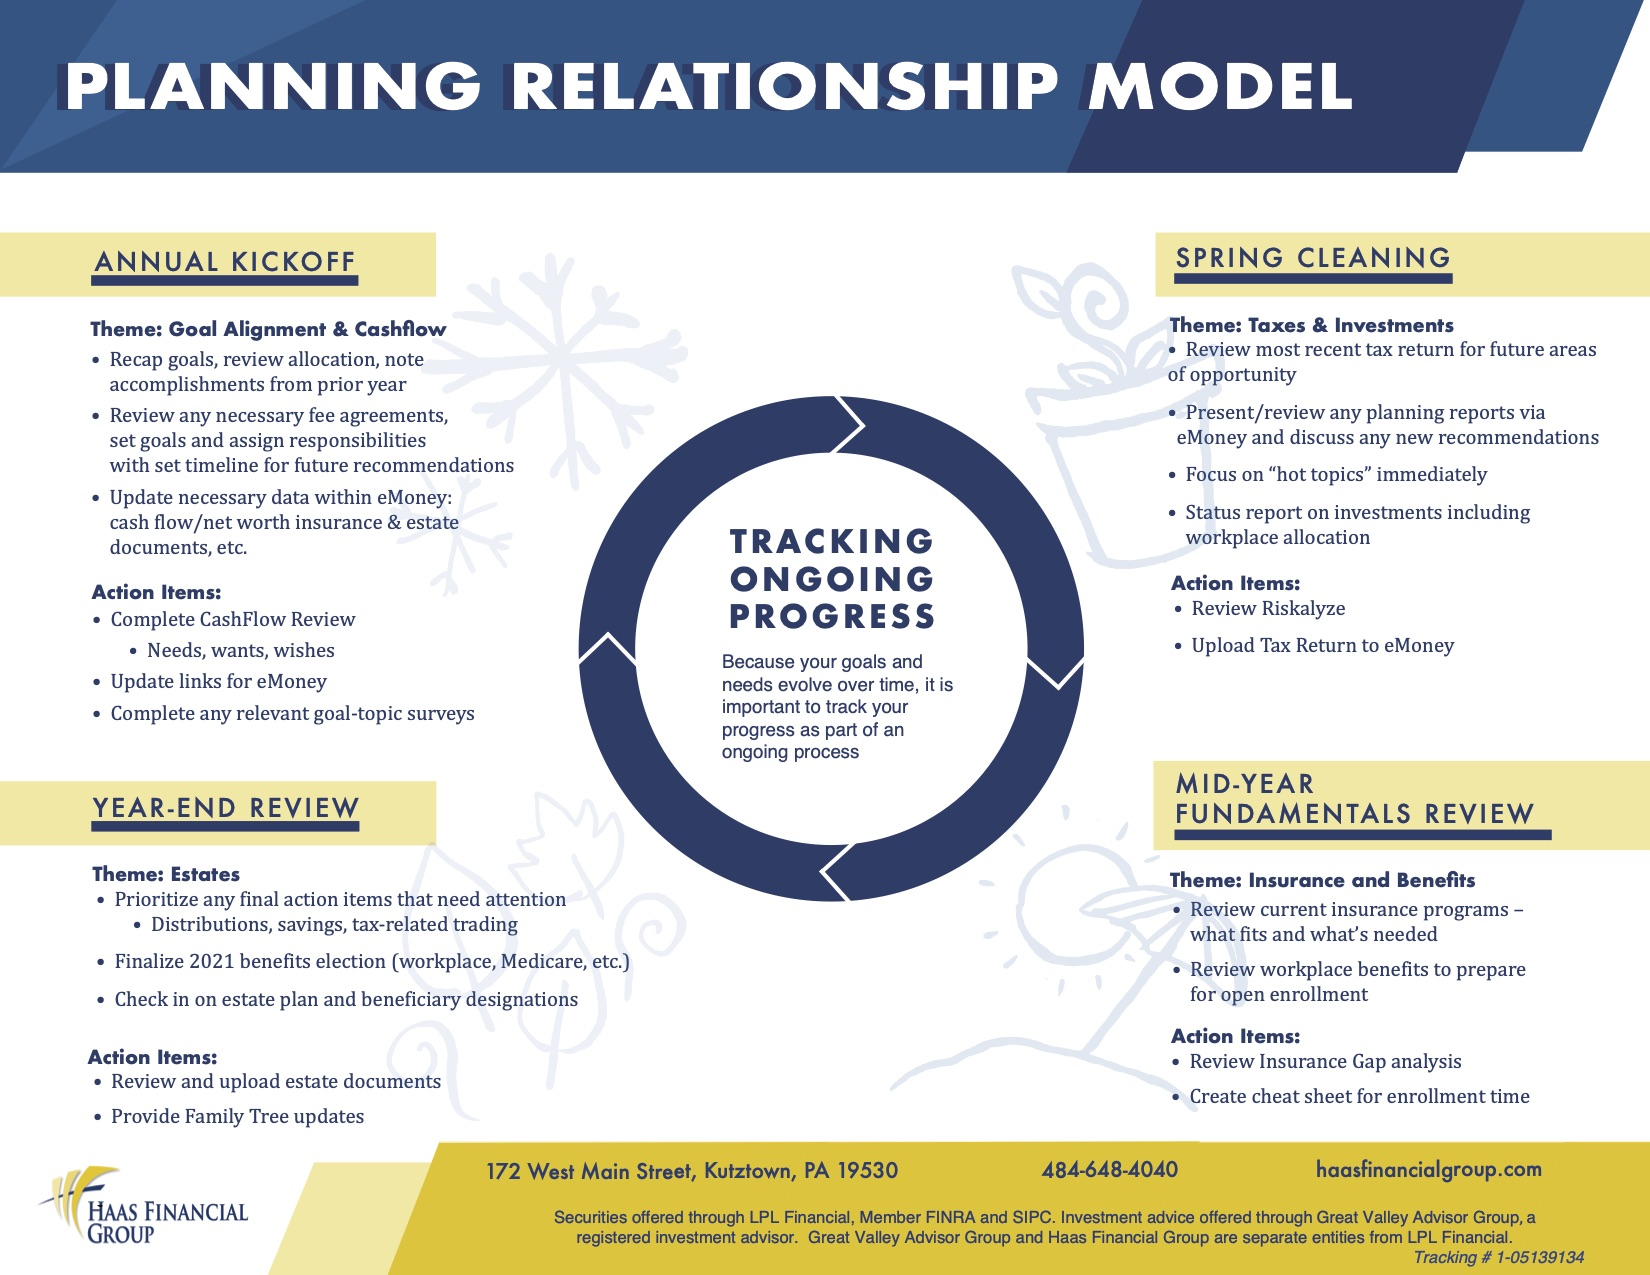 Haas Financial Group Planning Relationship Model